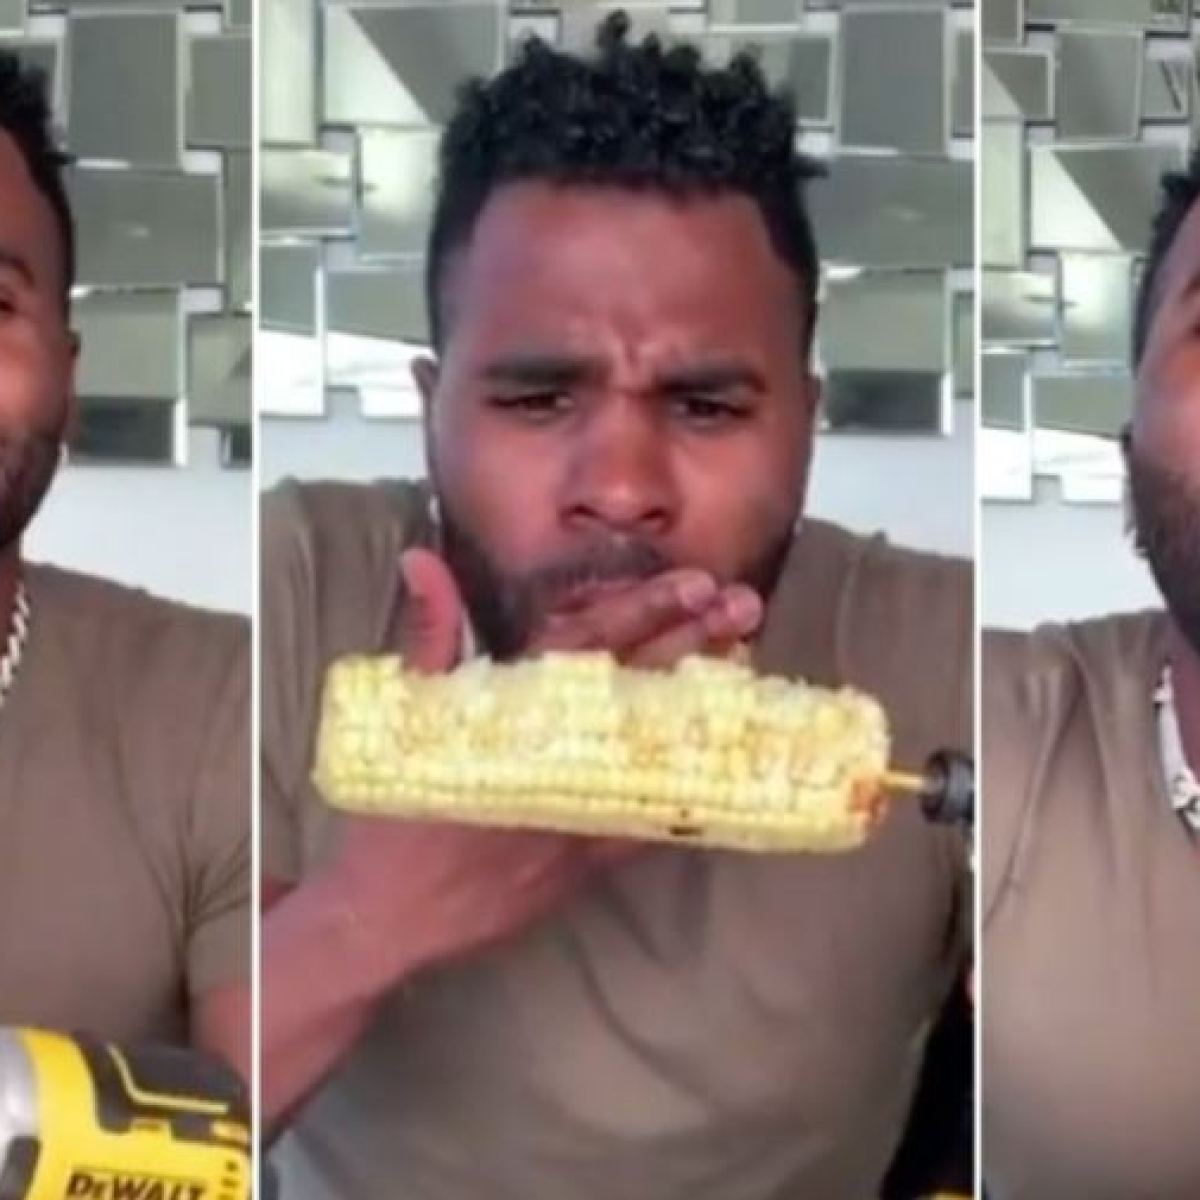 TikTok Challenge gone wrong: Jason Derulo breaks front teeth